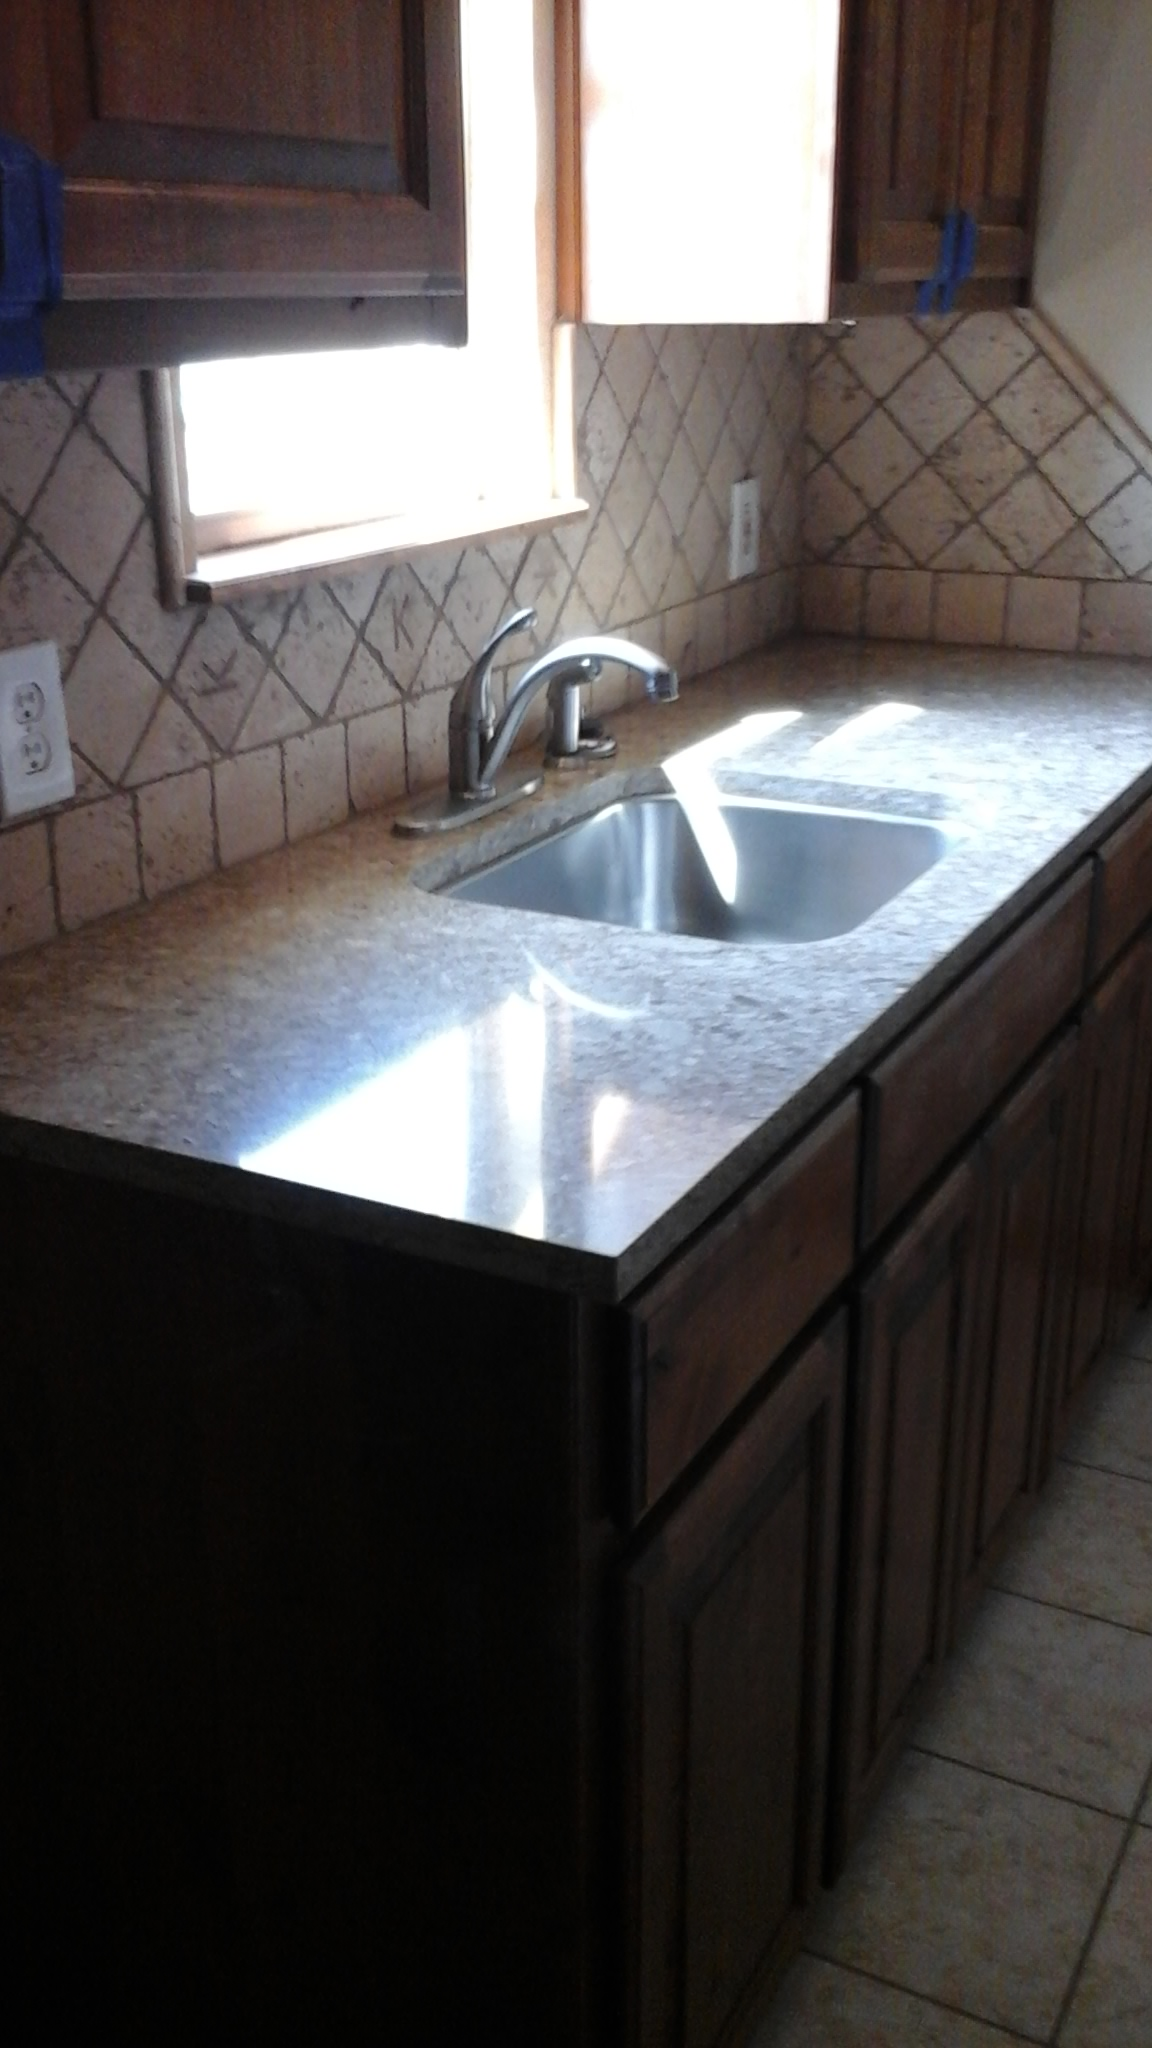 Granite/Undermount Sink